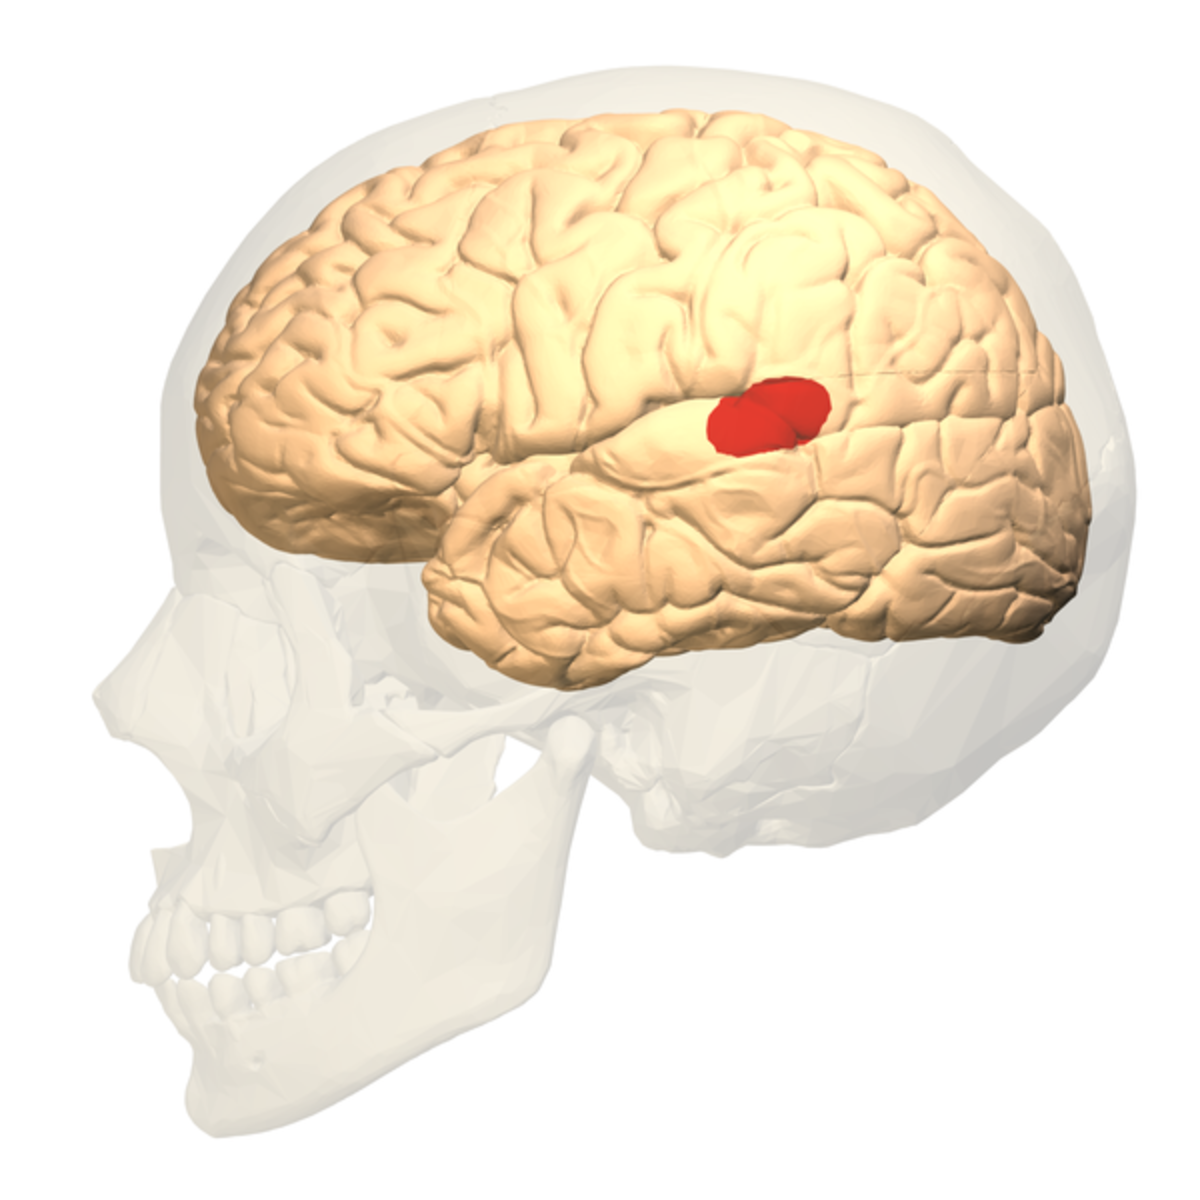 Wernicke's area is located where the parietal lobe joins the temporal lobe.